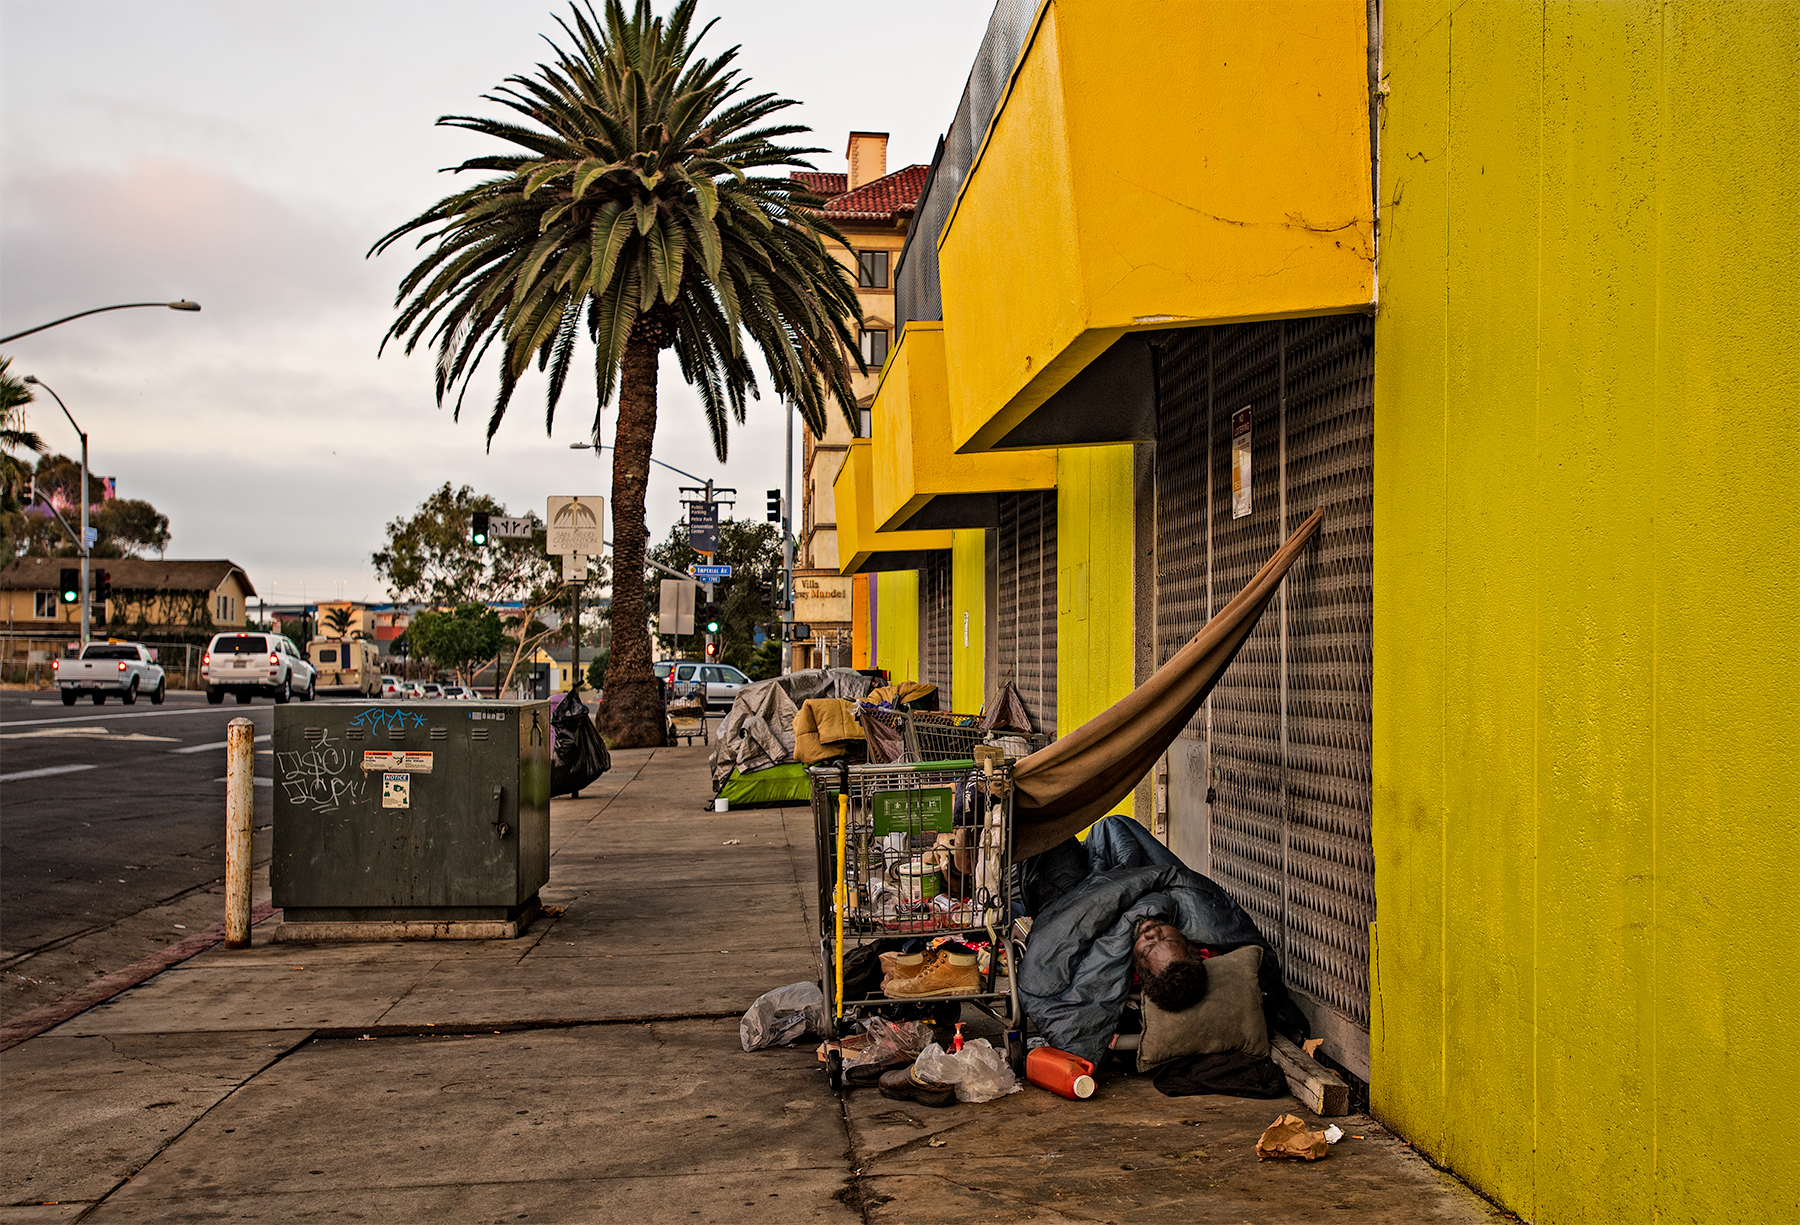 Homeless camping in San Diego